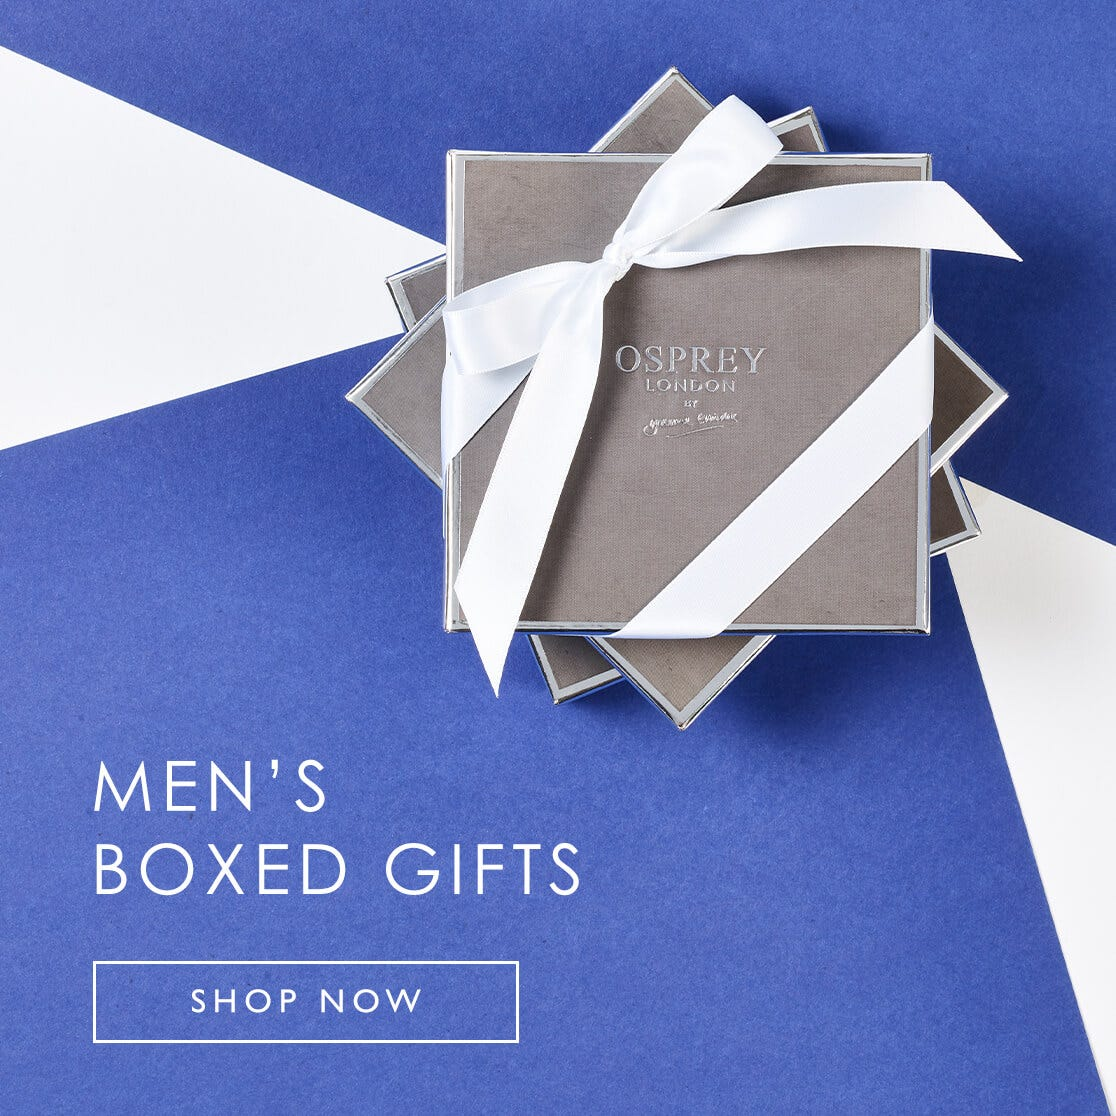 Men's Boxed Gifts